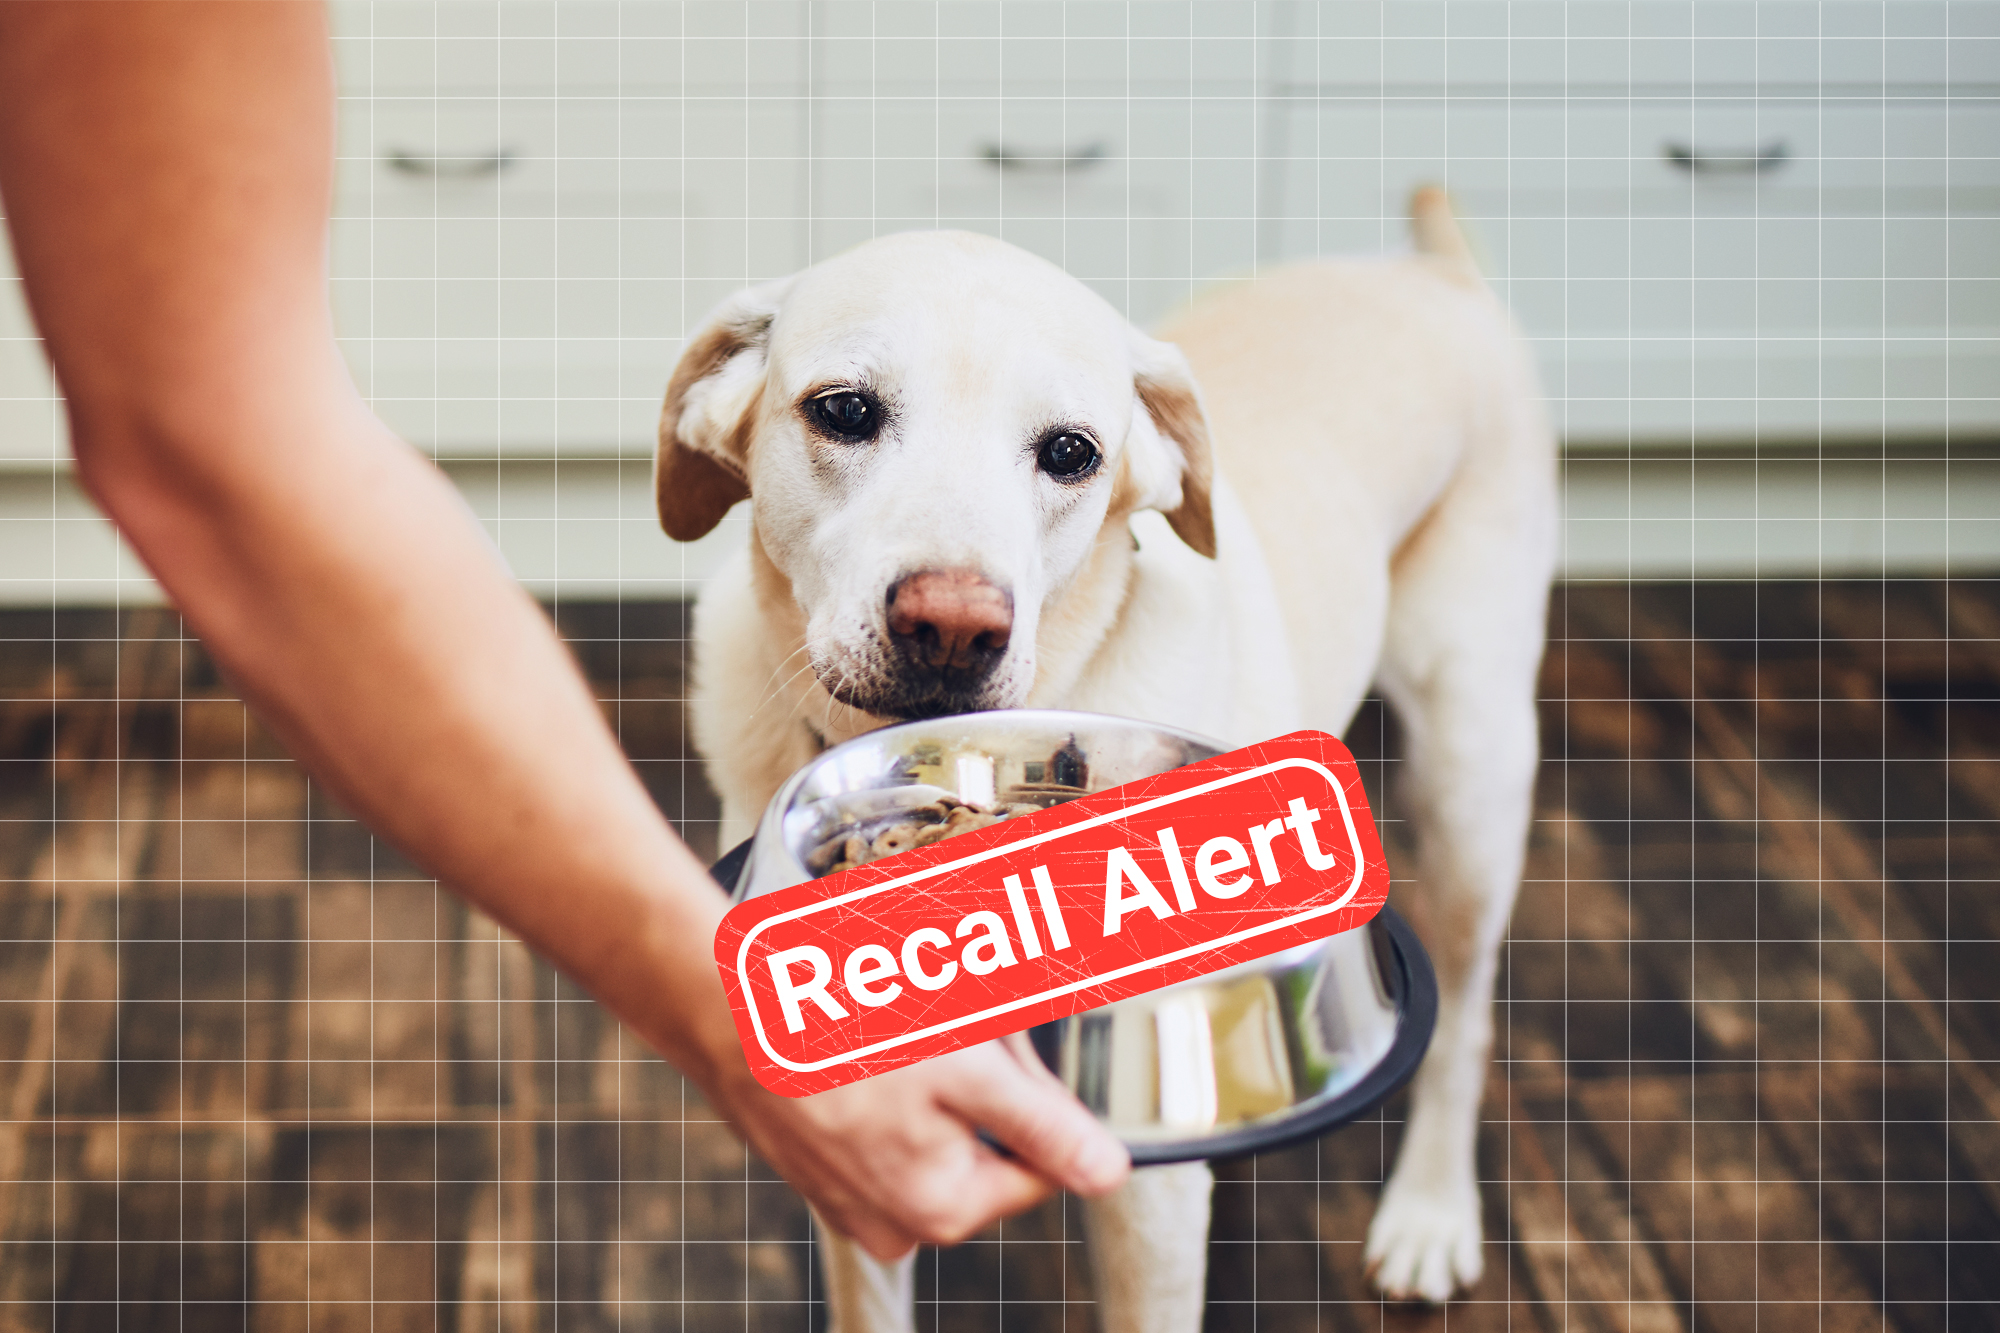 A dog looking at a bowl of dog food with a recall alert over it